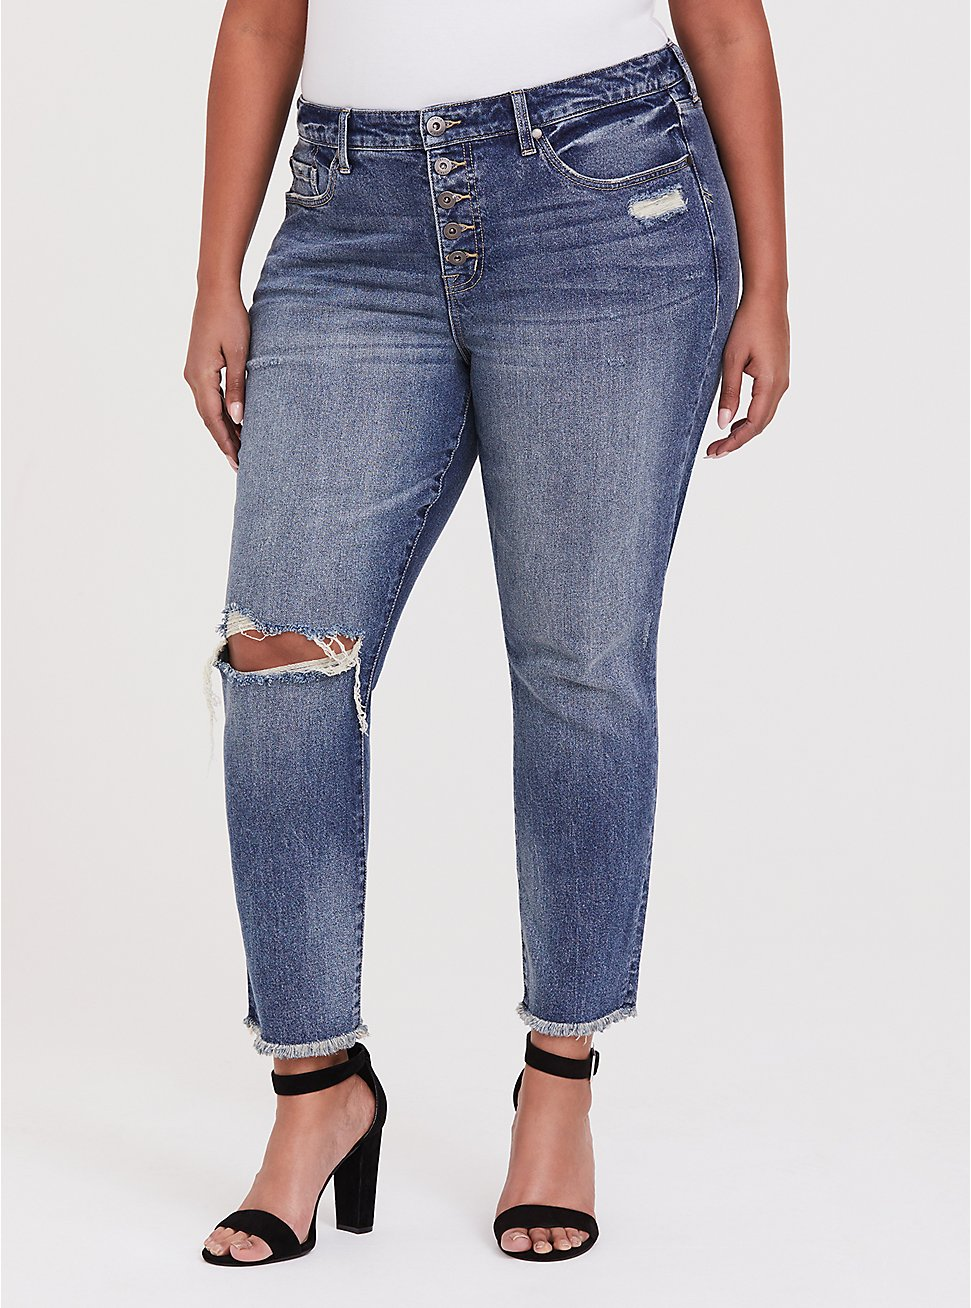 High Rise Straight Jean - Medium Wash with Frayed Hem, SANTA FE, hi-res